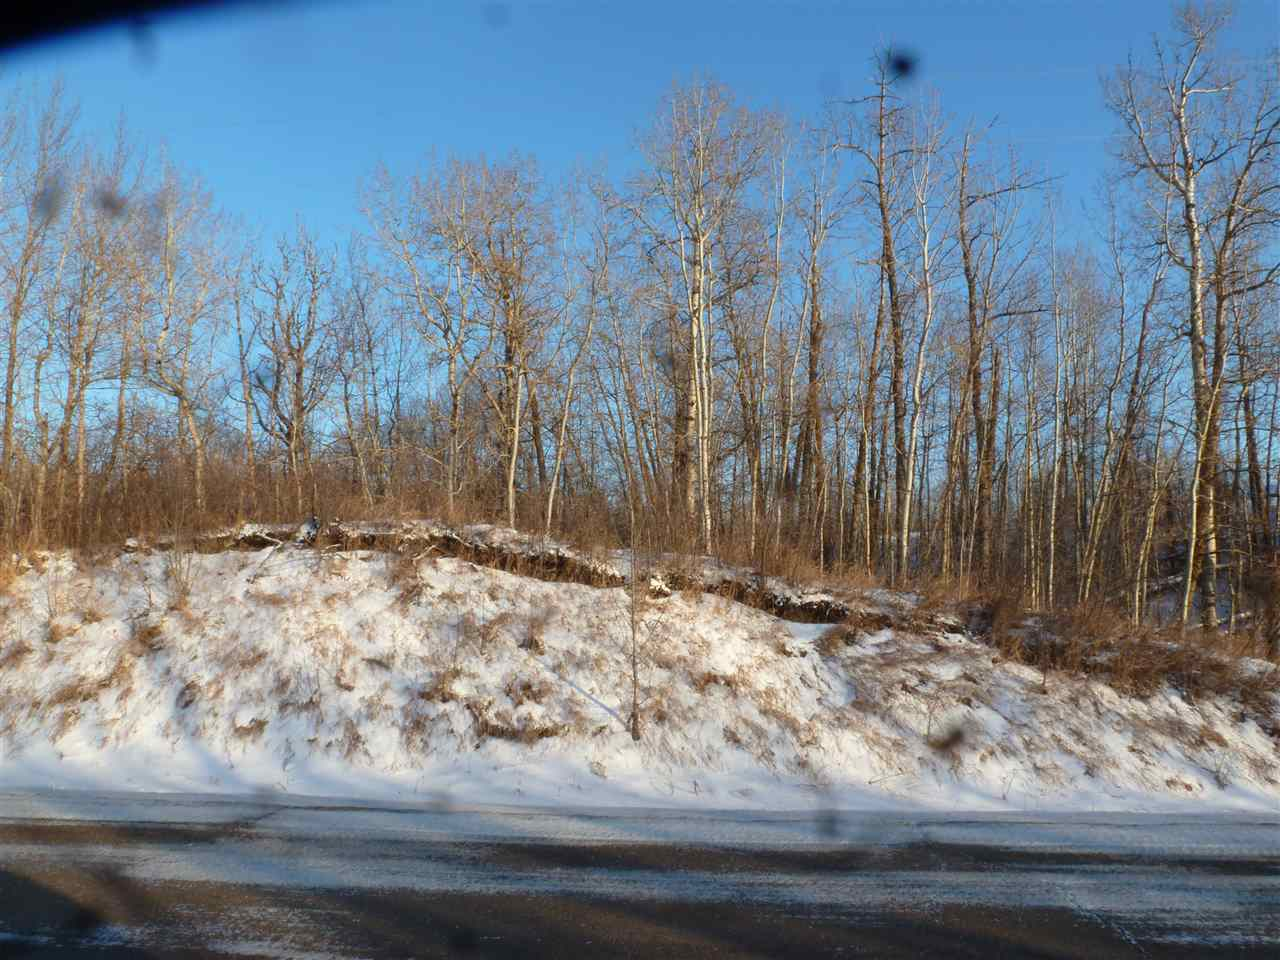 4.99 Acres - Raw Land/Vacant Lot on the North side of the Hamlet of North Cooking Lake. All trees - zoned Country Residential. Let your Dreams Run Wild! All kinds od potential!